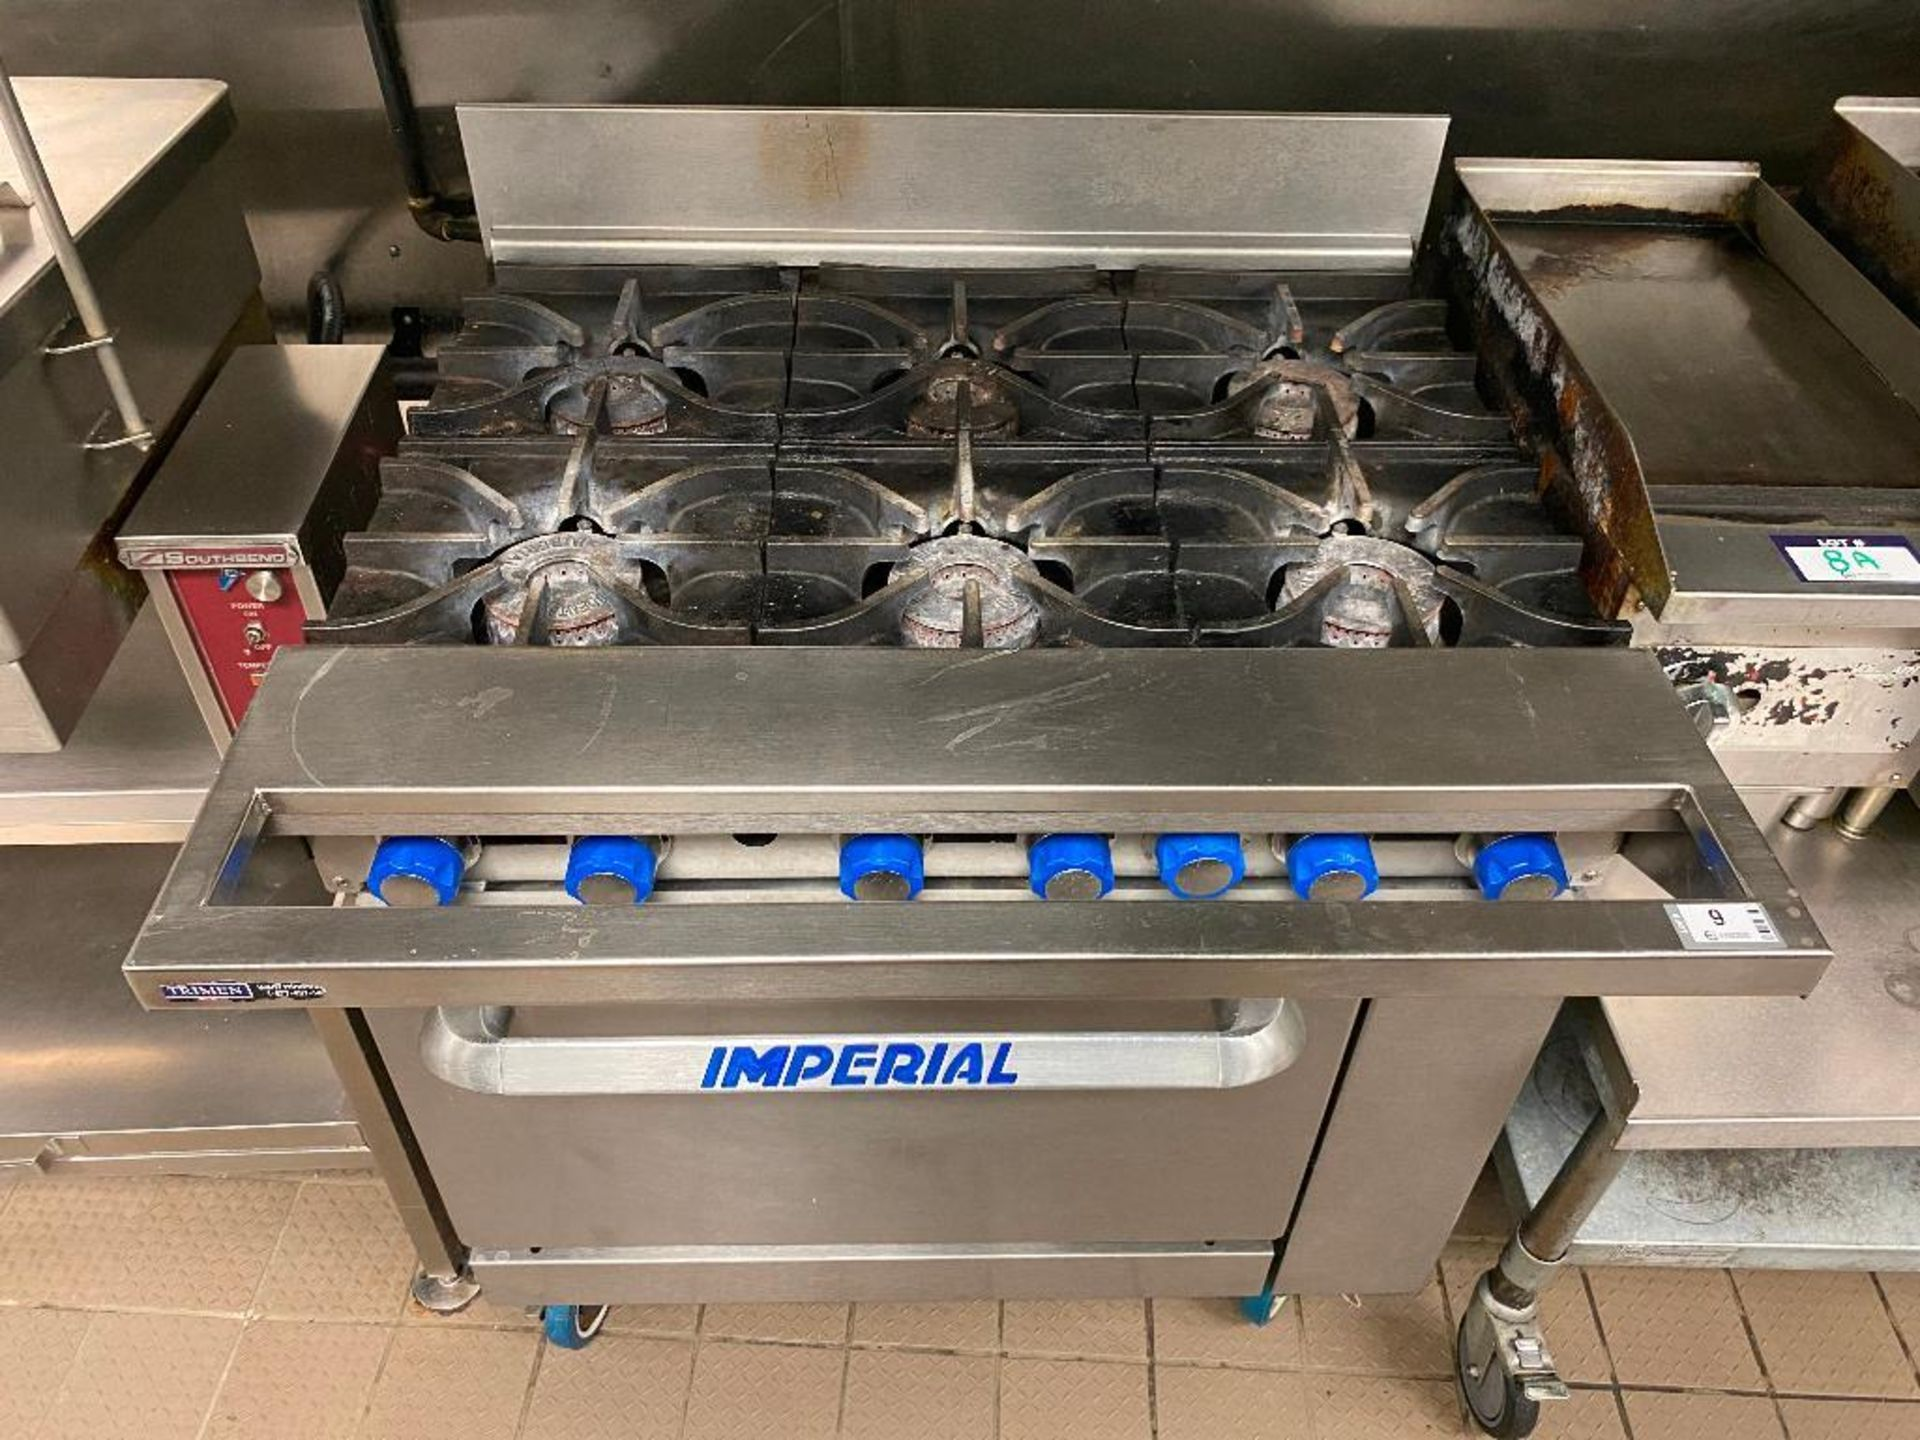 IMPERIAL 6 BURNER RANGE - NOTE: REQUIRES DISCONNECT, PLEASE INSPECT - Image 3 of 5